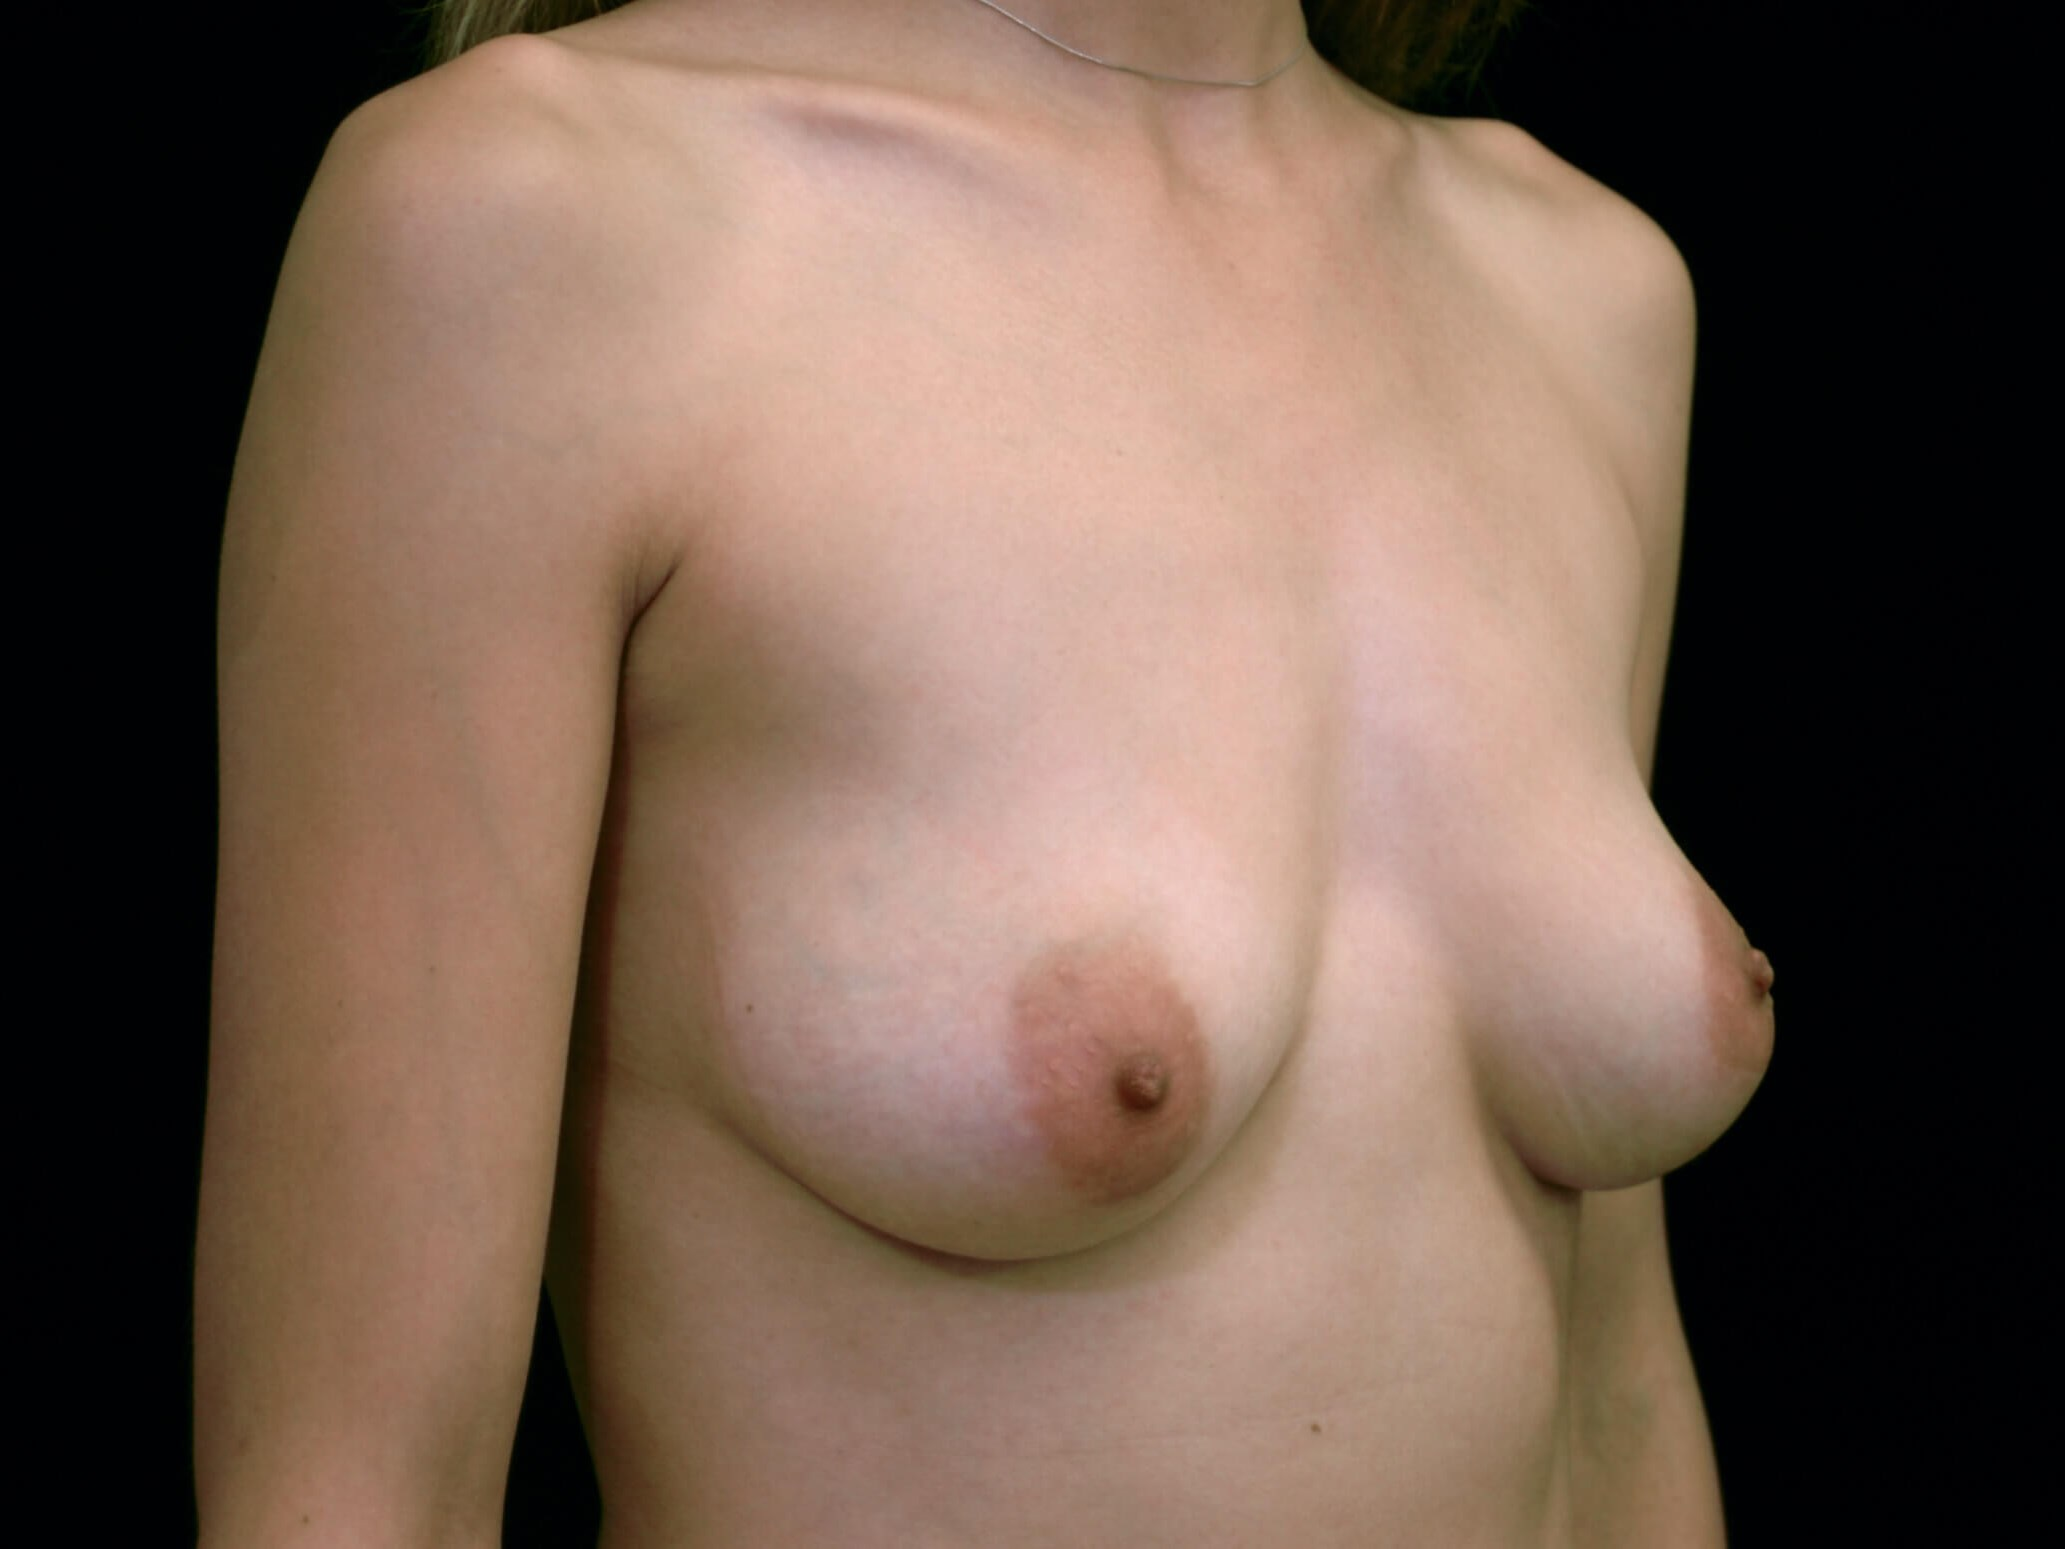 DALLAS, TEXAS WOMAN HAS BREAST AUGMENTATION SURGERY WITH SILICONE GEL IMPLANTS